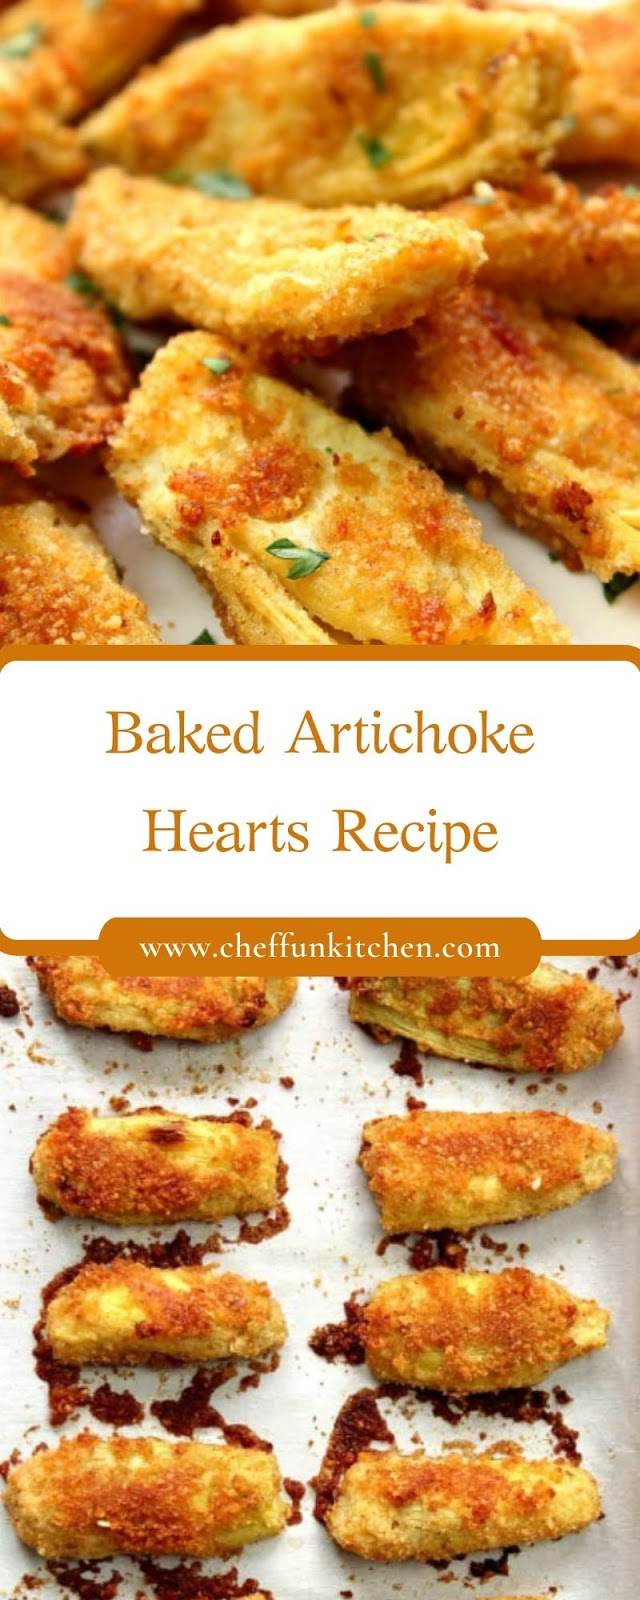 Baked Artichoke Hearts Recipe